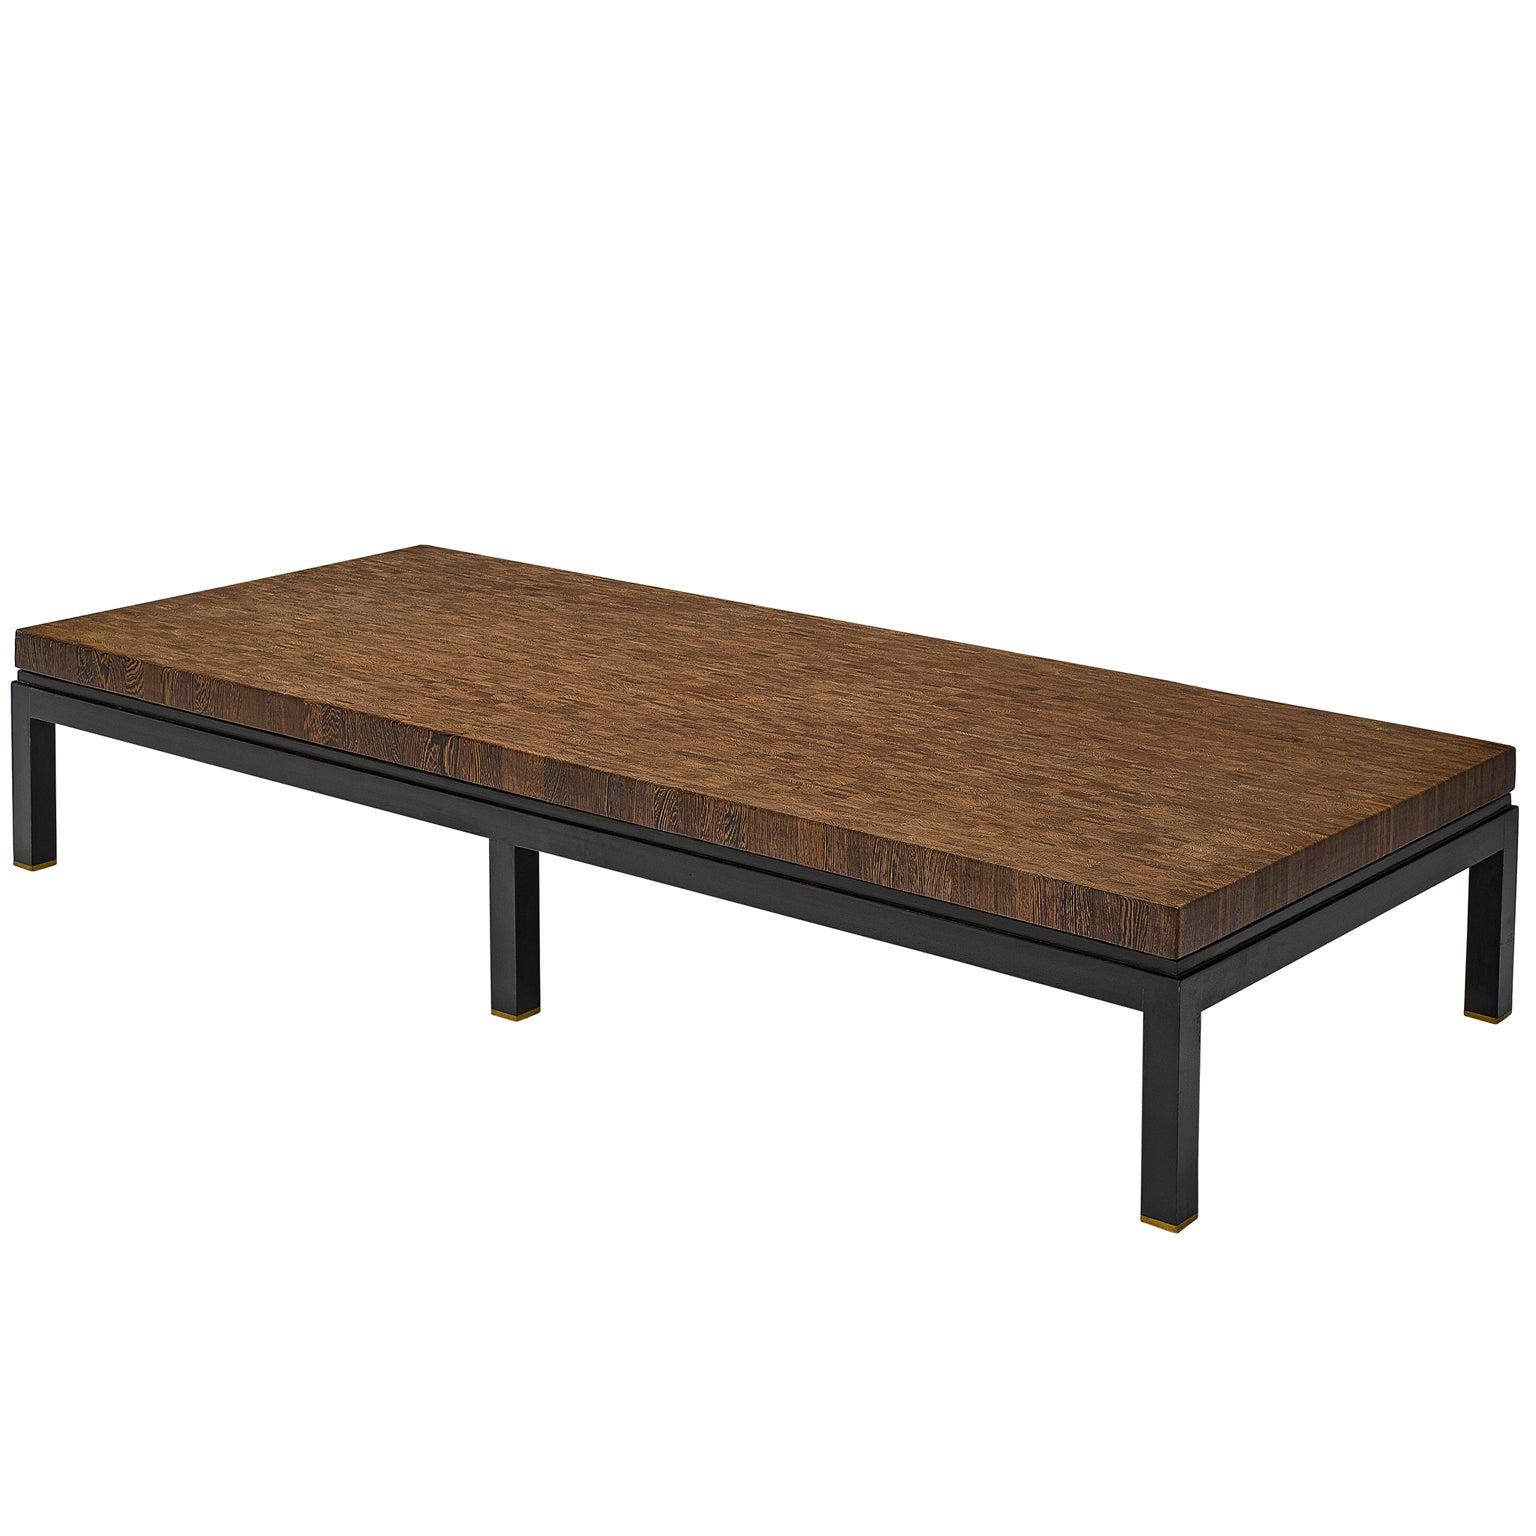 Jules Wabbes Large Coffee Table in Wengé